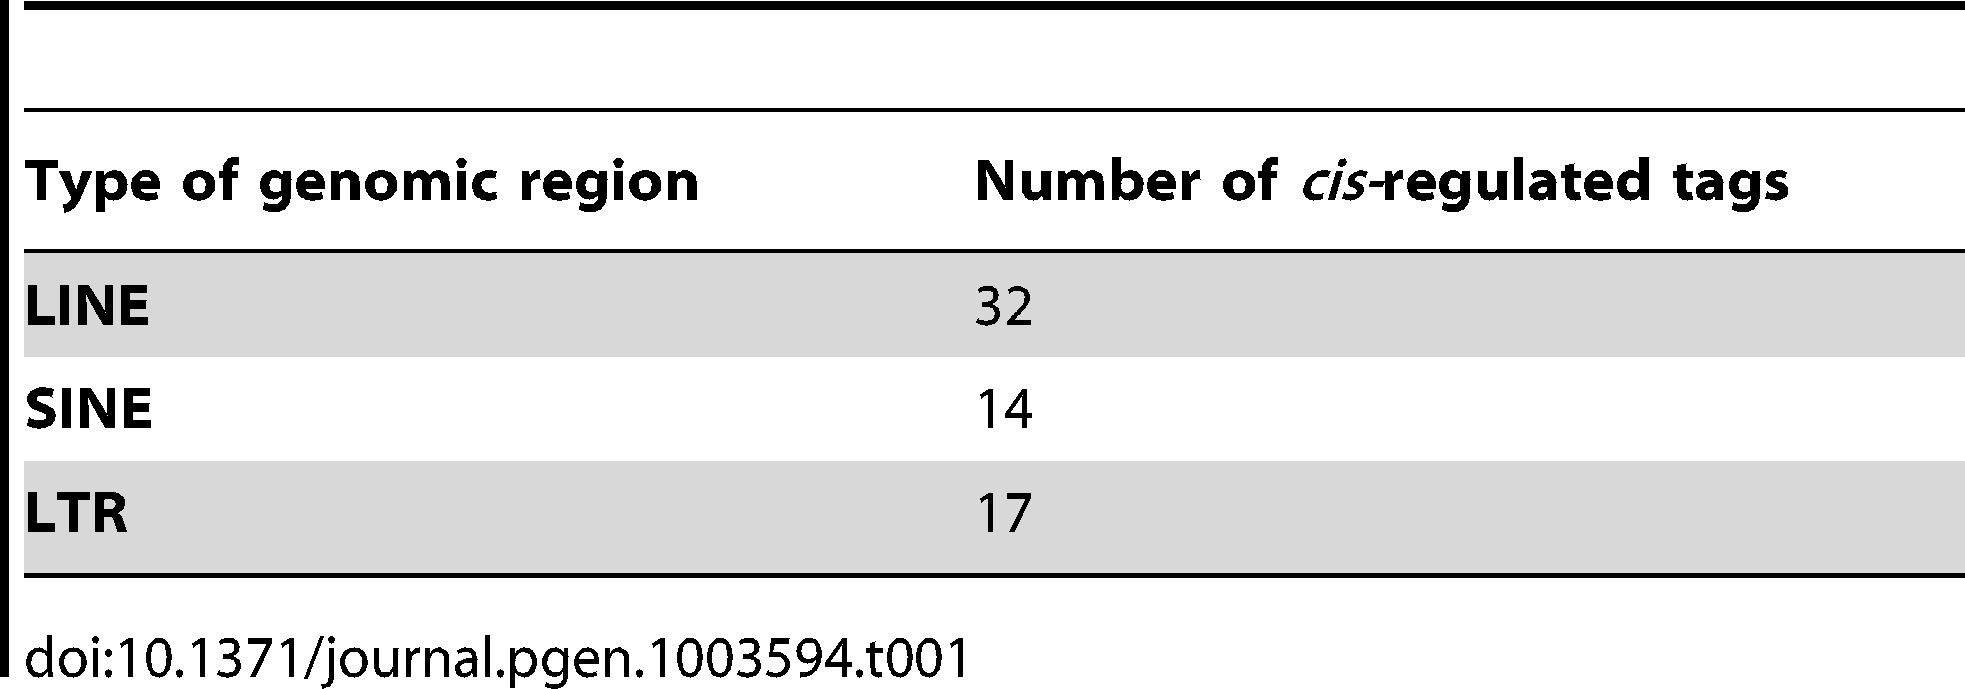 Number of <i>cis-</i>regulated tags mapping to different genomic regions in tag-wise DeepSAGE eQTL mapping.